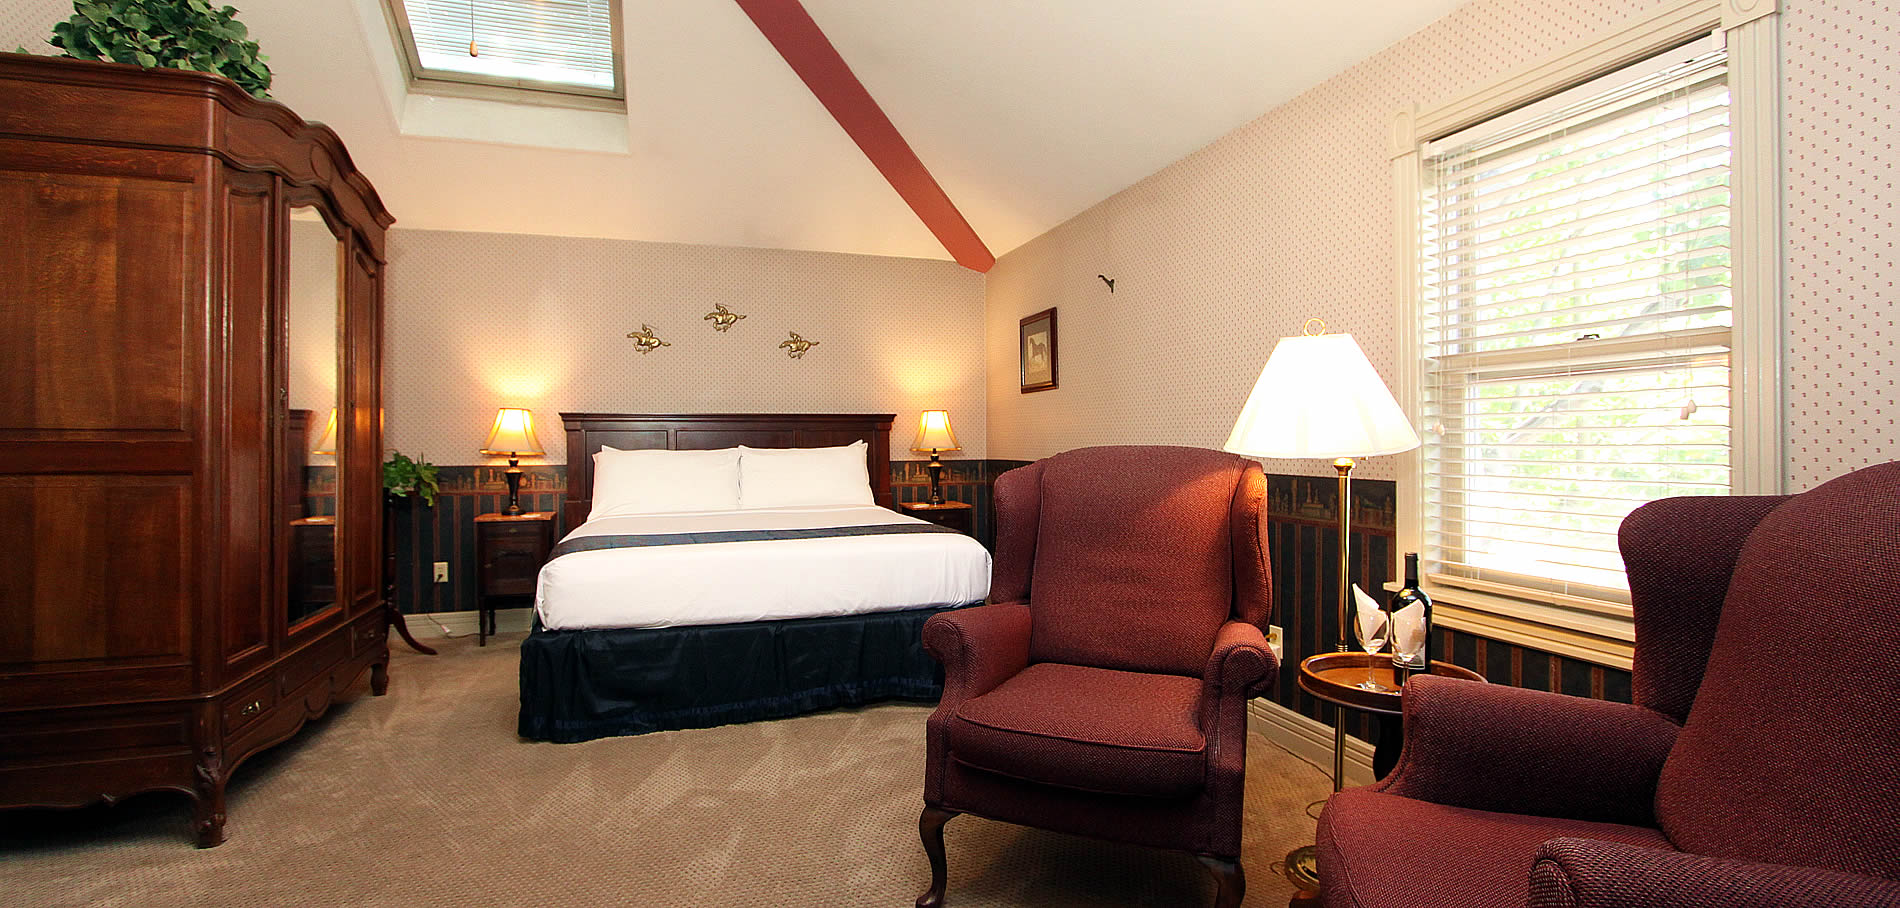 bridle suite with bed and chairs